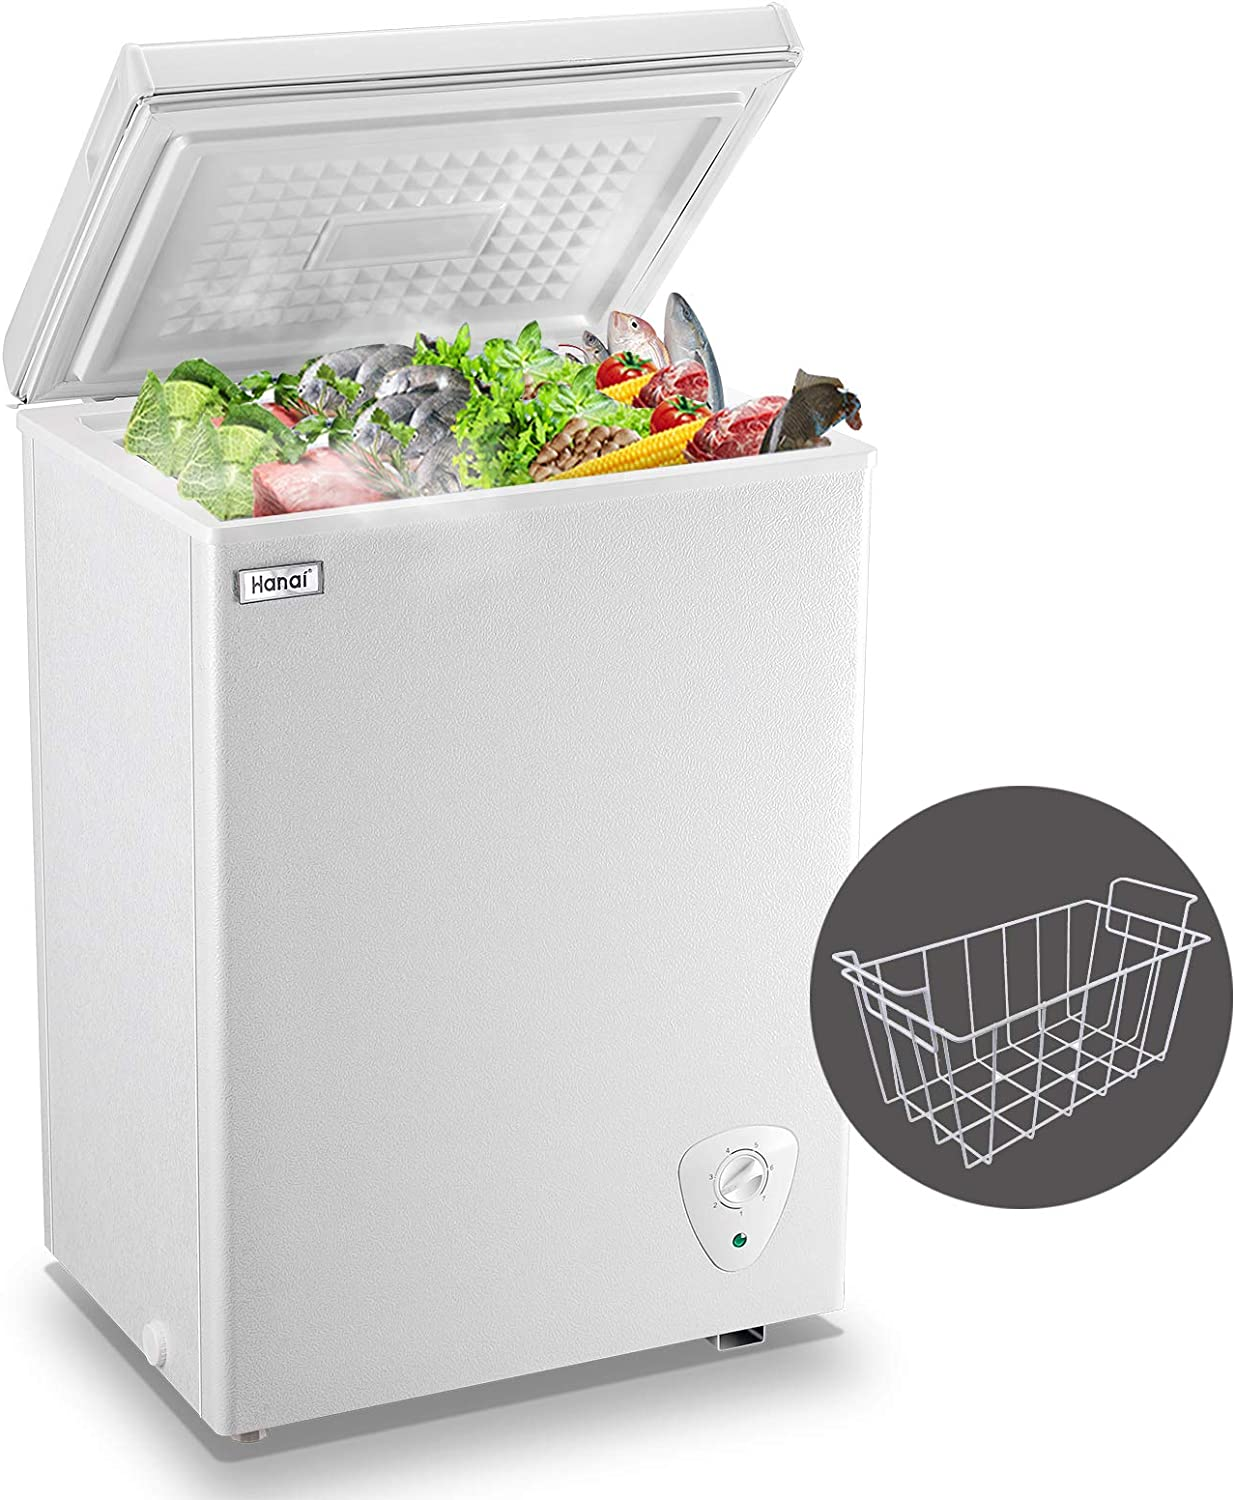 WANAI Chest Freezer 3.5 Cubic Feet Compact Freezers with Adjustable Thermostat Top Open Door Freezer Compressor Cooling with Rmovable Storage Basket for Home, Kitchen and Office. White